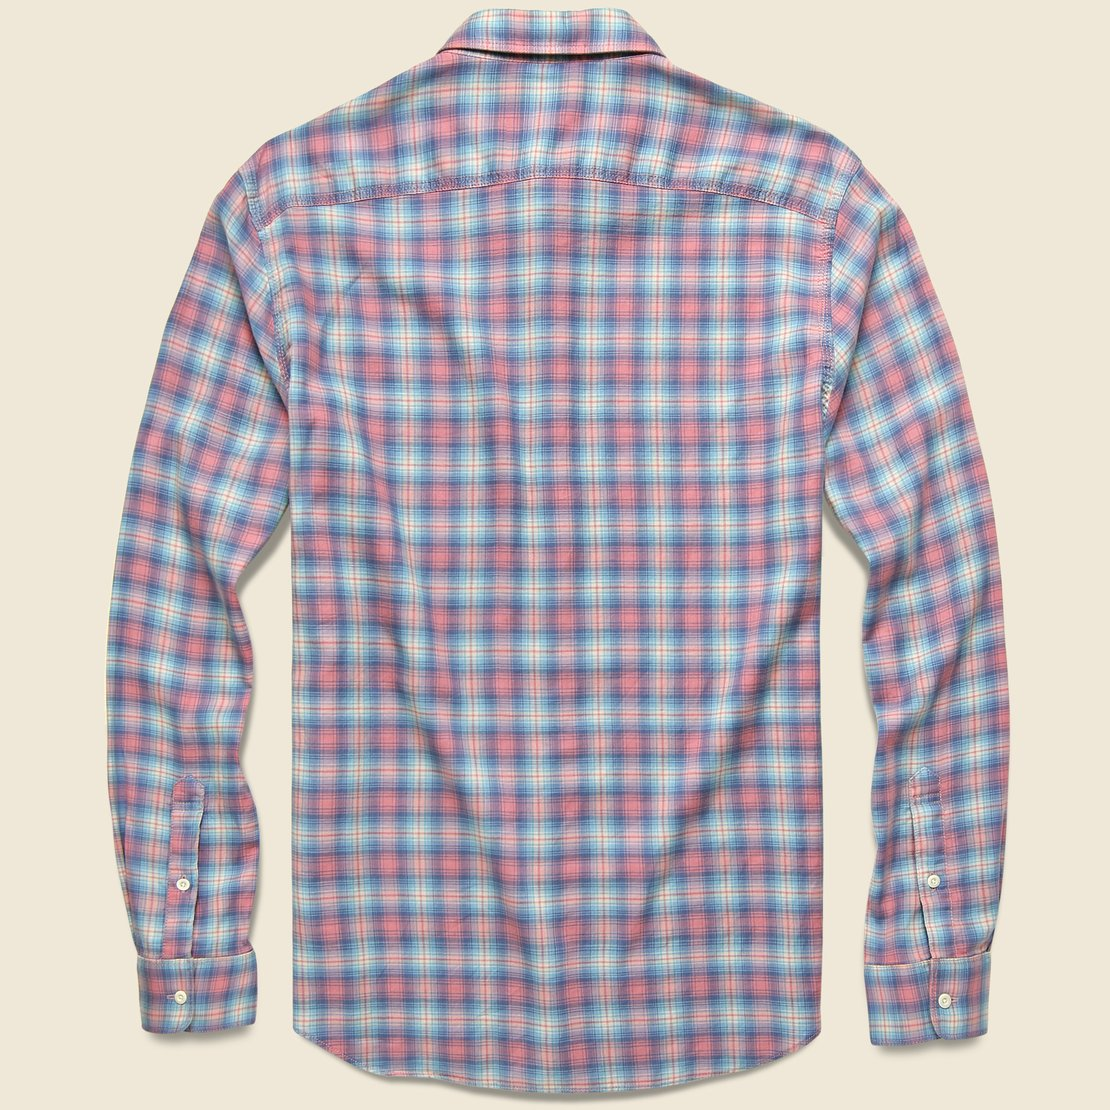 Everyday Shirt - Summerland Plaid